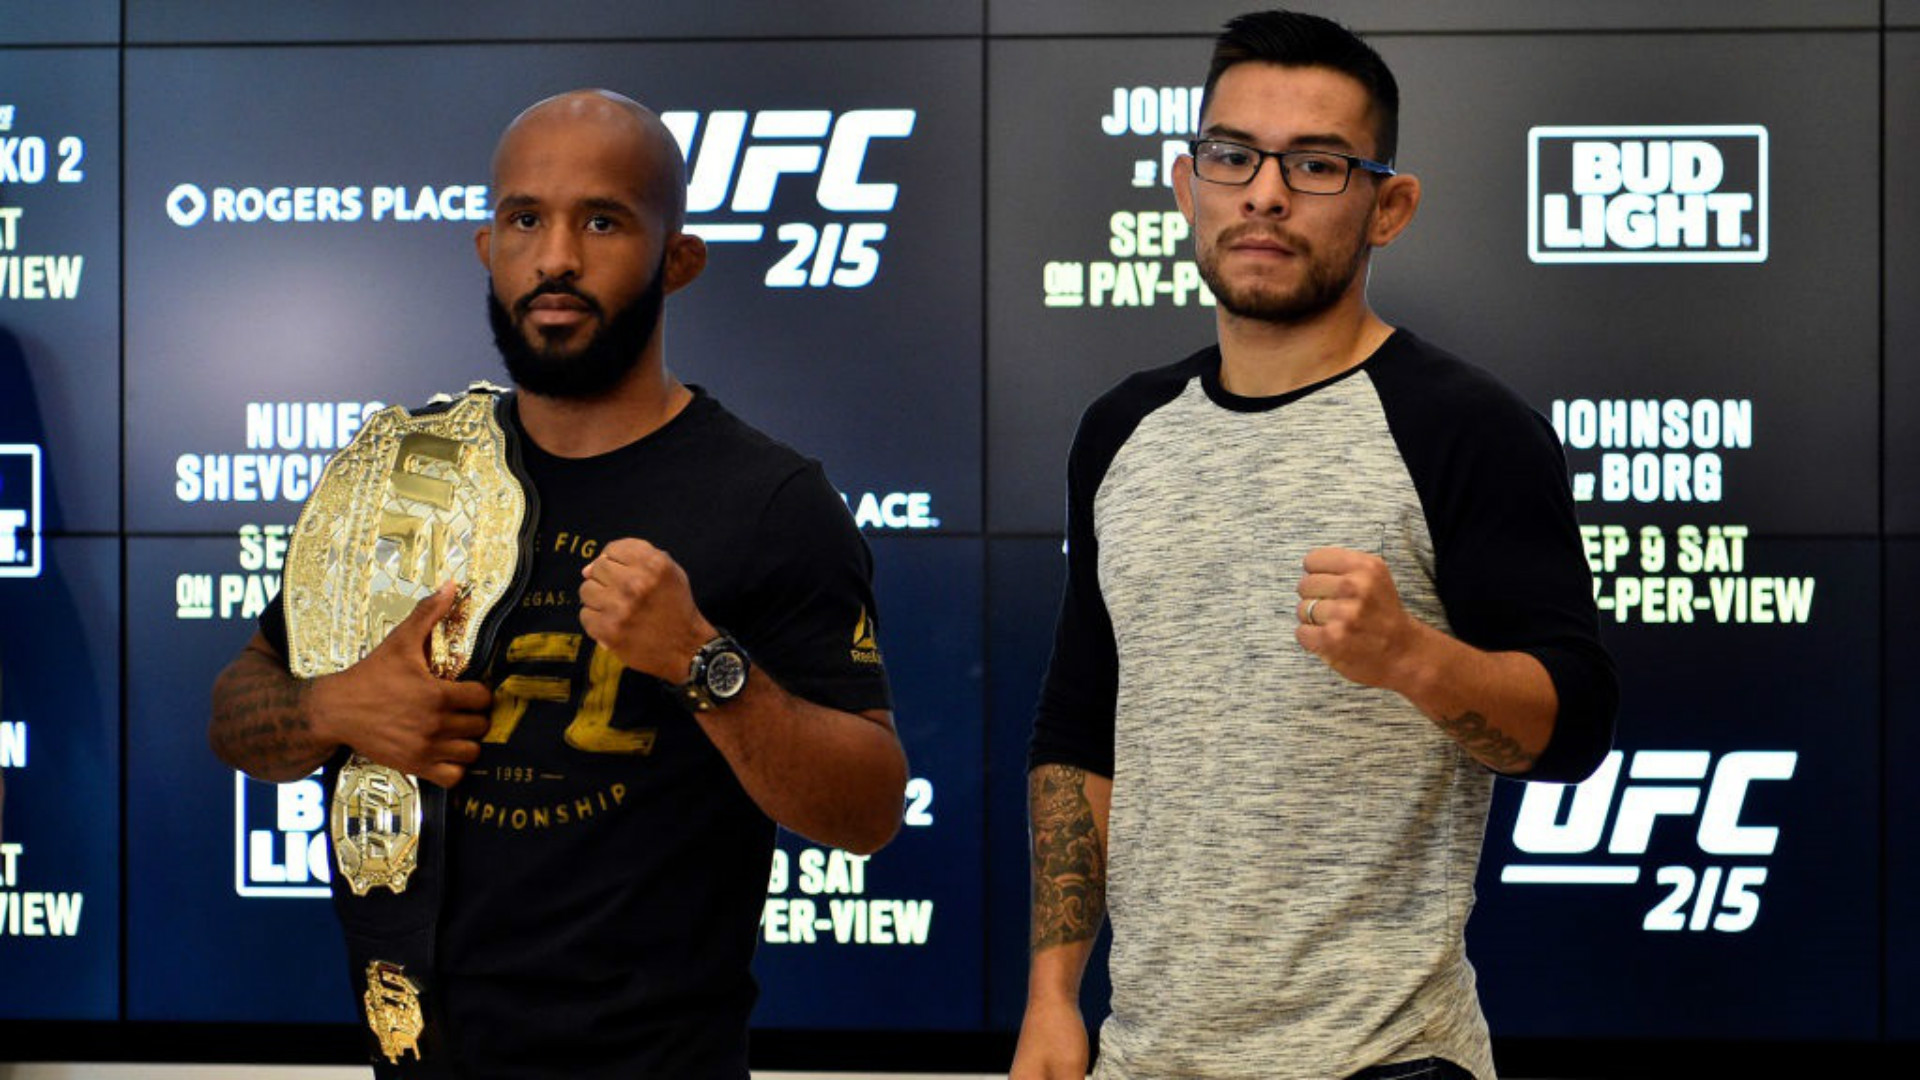 Demetrious Johnson Doesn't Pay Attention to Other People's Win Streaks